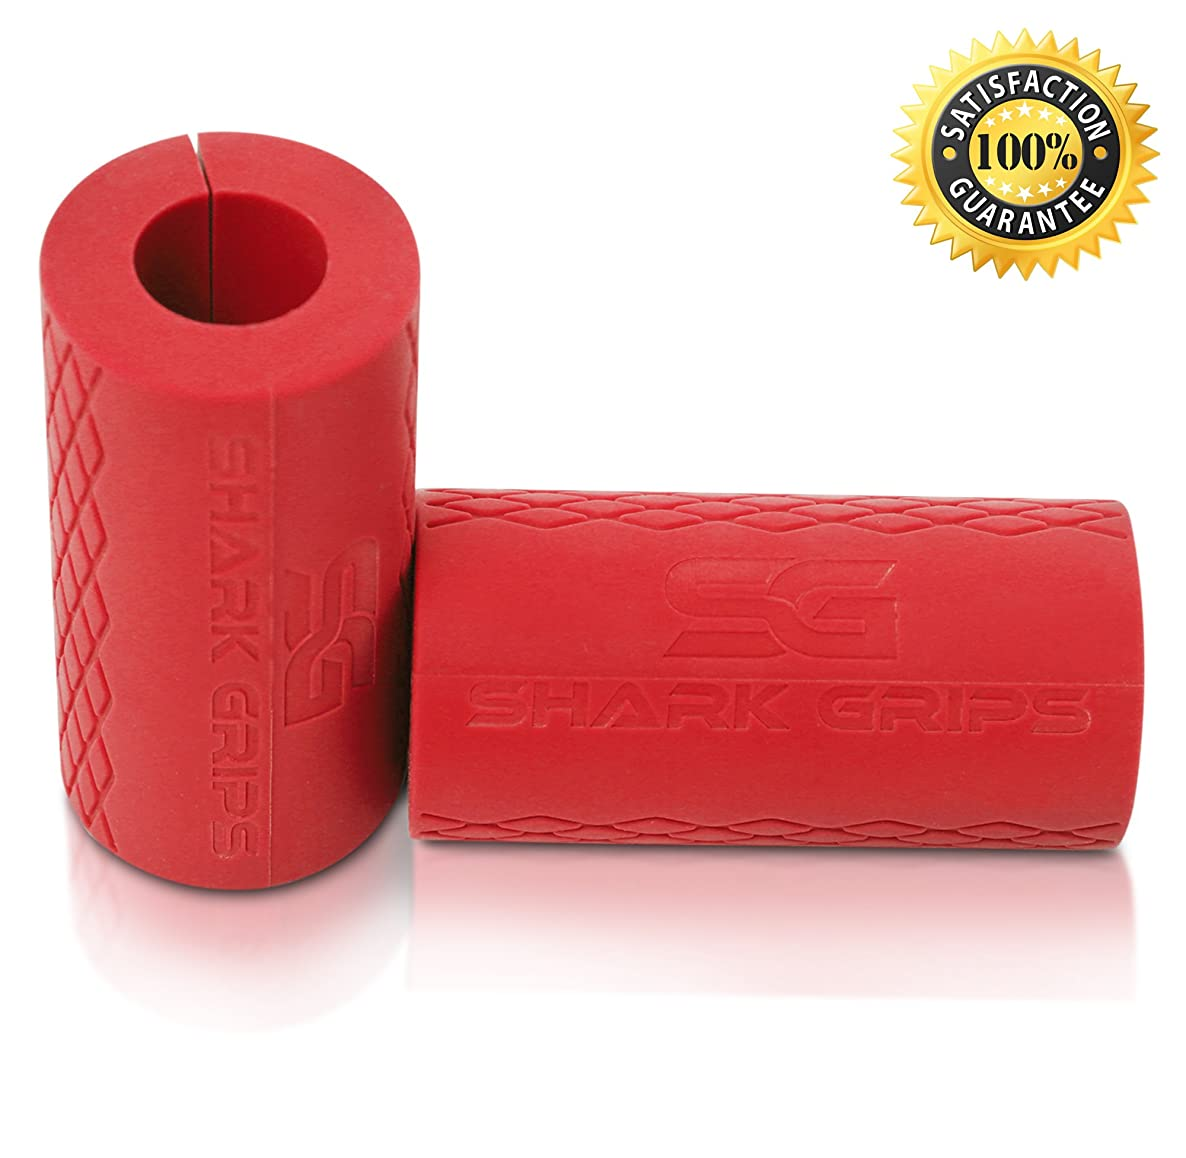 Shark Thick Bar Grips Turns Barbell, Dumbbell, and Kettlebell Into Grips for Bar Training and Muscle Growth. Strengthen Your Forearm, Biceps, Triceps, Chest. Crossfit, Strongman, Bodybuilding